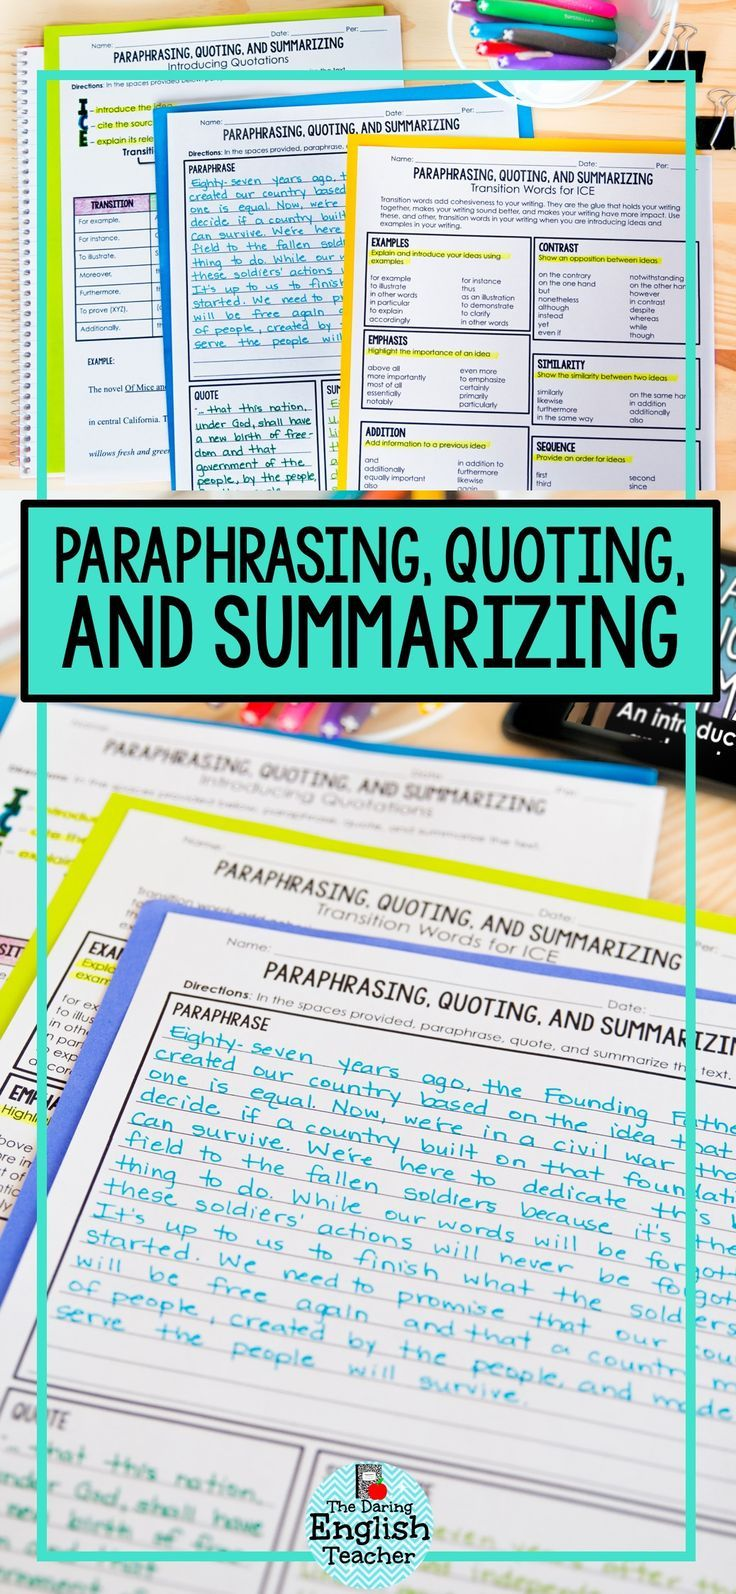 Paraphrase Quote Summarize Teach Your Student How To And Text With Thi Teaching Summarizing Writing Lesson What I The Similaritie Of Paraphrasing